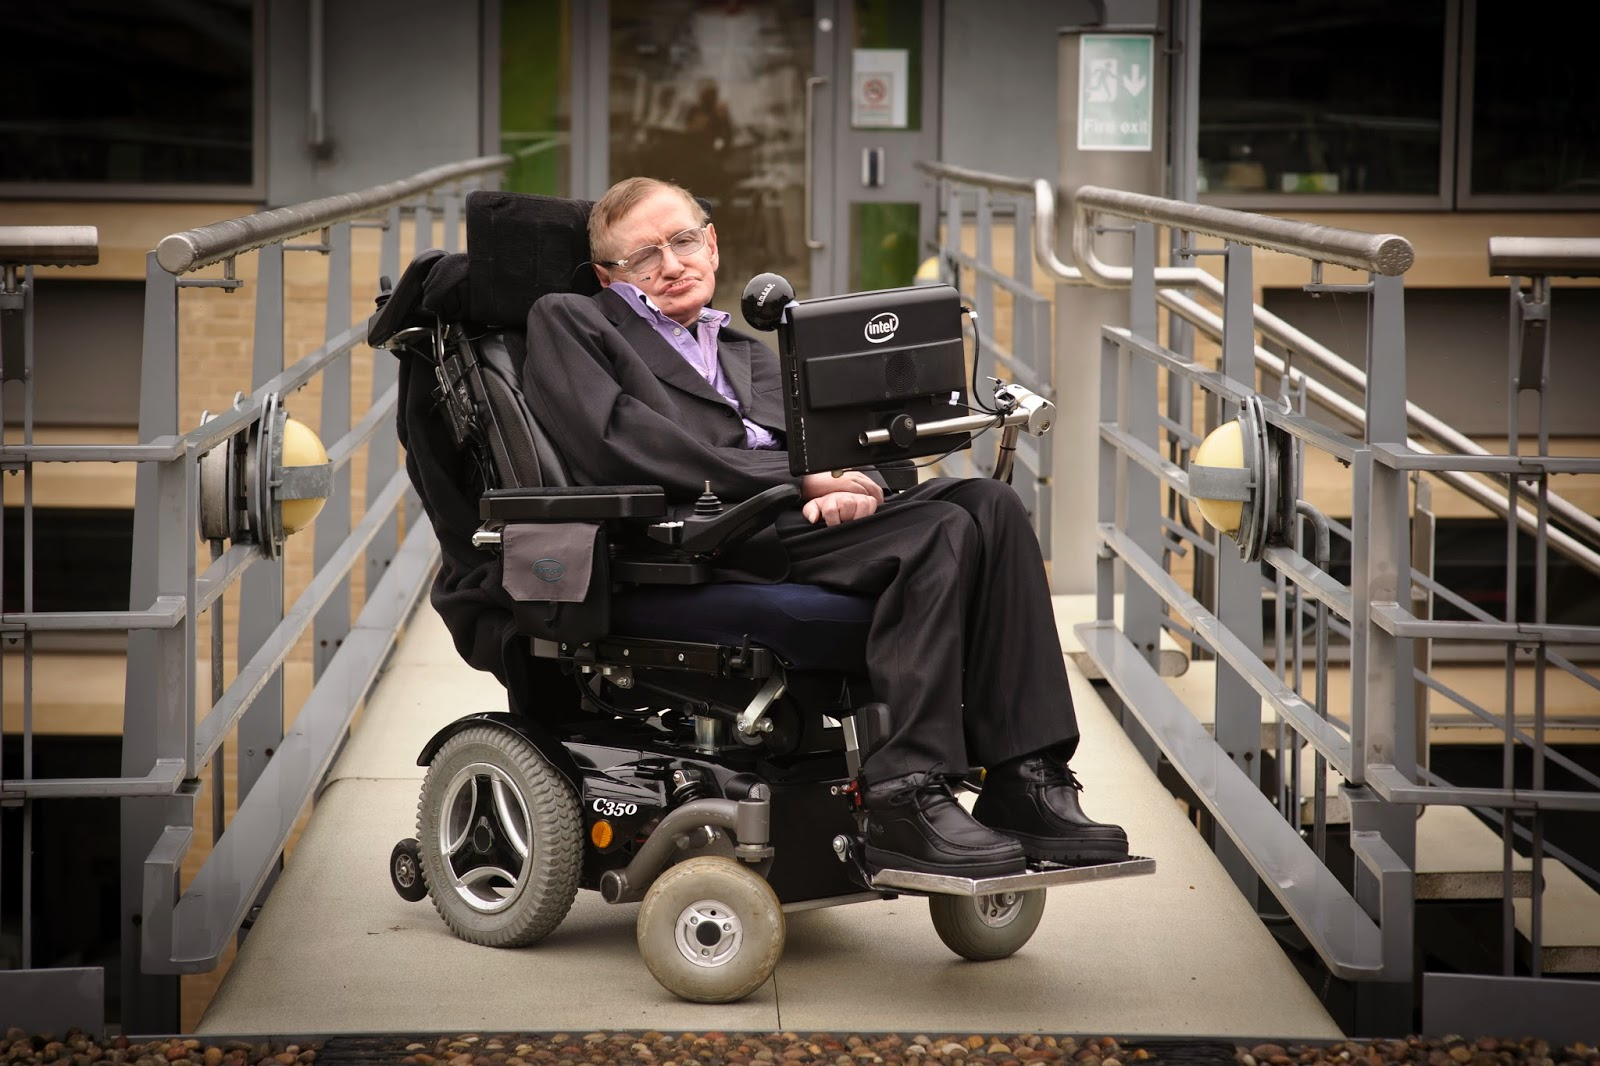 The World's Greatest Scientist Stephen Hawking Died